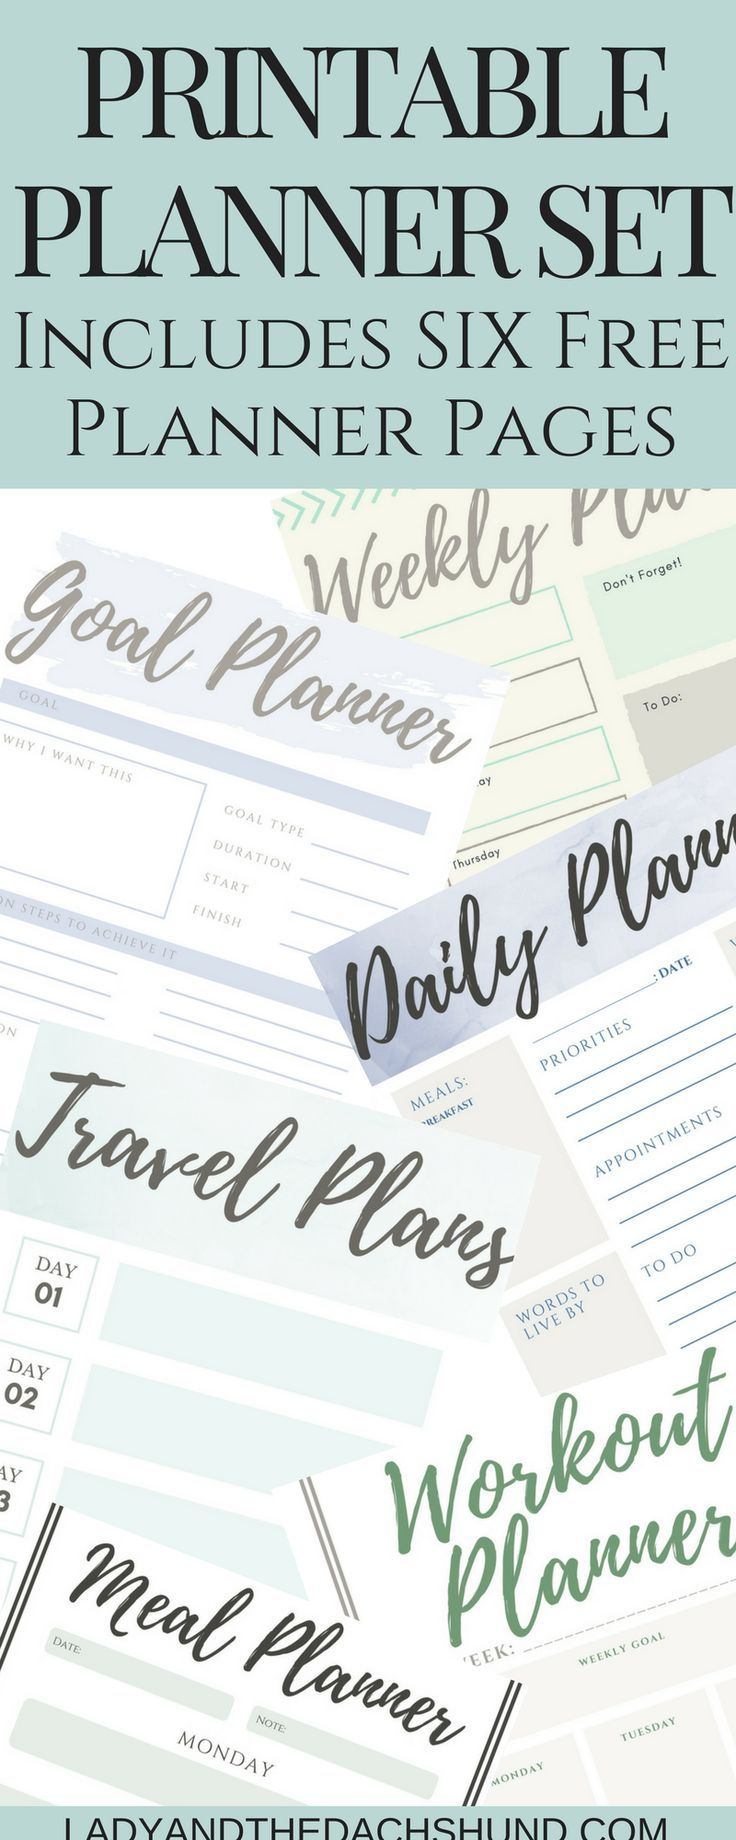 Free Rustic Farmhouse Simple Printable Planner Set Pages Daily Planner, Weekly Planner, Workout Planner, Travel Planner, Meal Planner, and Goal Planner